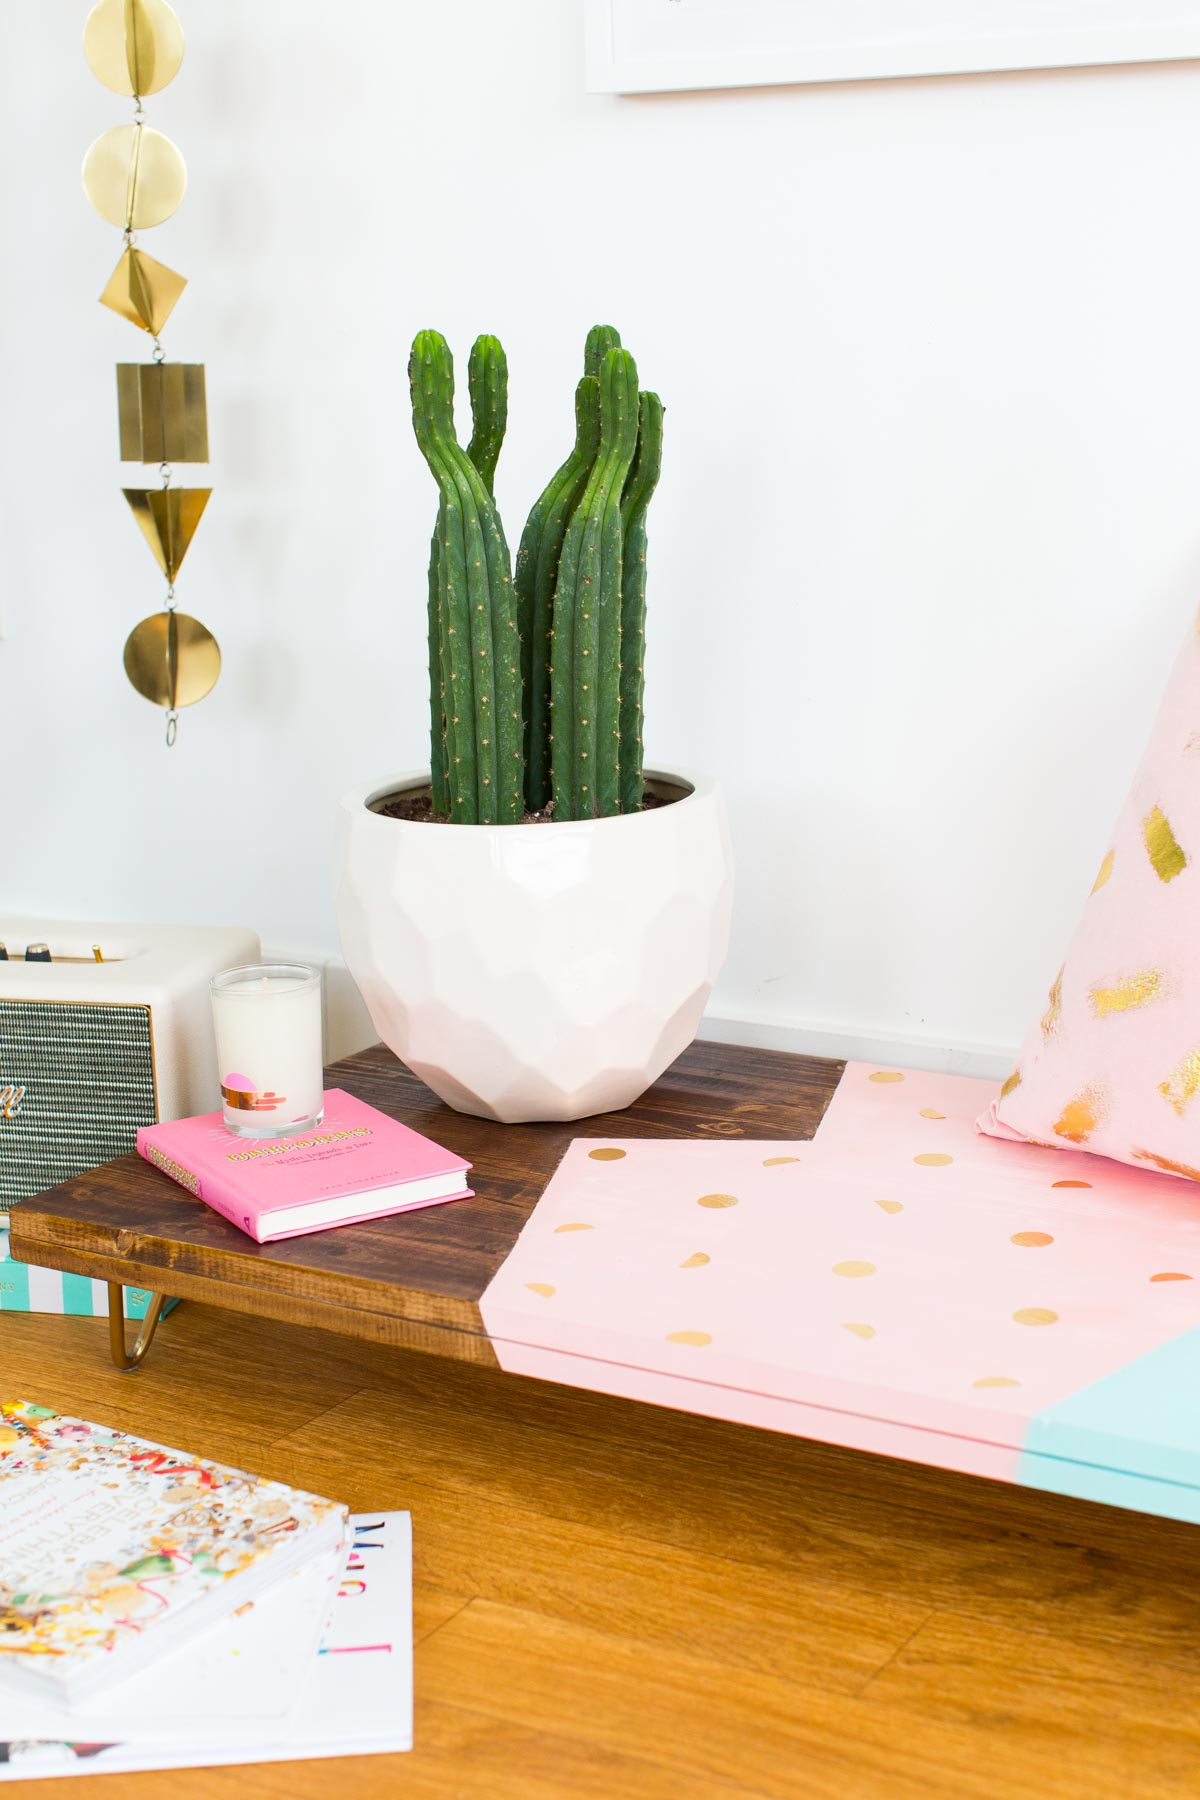 An Abstract DIY Modern Low Bench by Lifestyle and DIY blogger, Ashley Rose of Sugar & Cloth